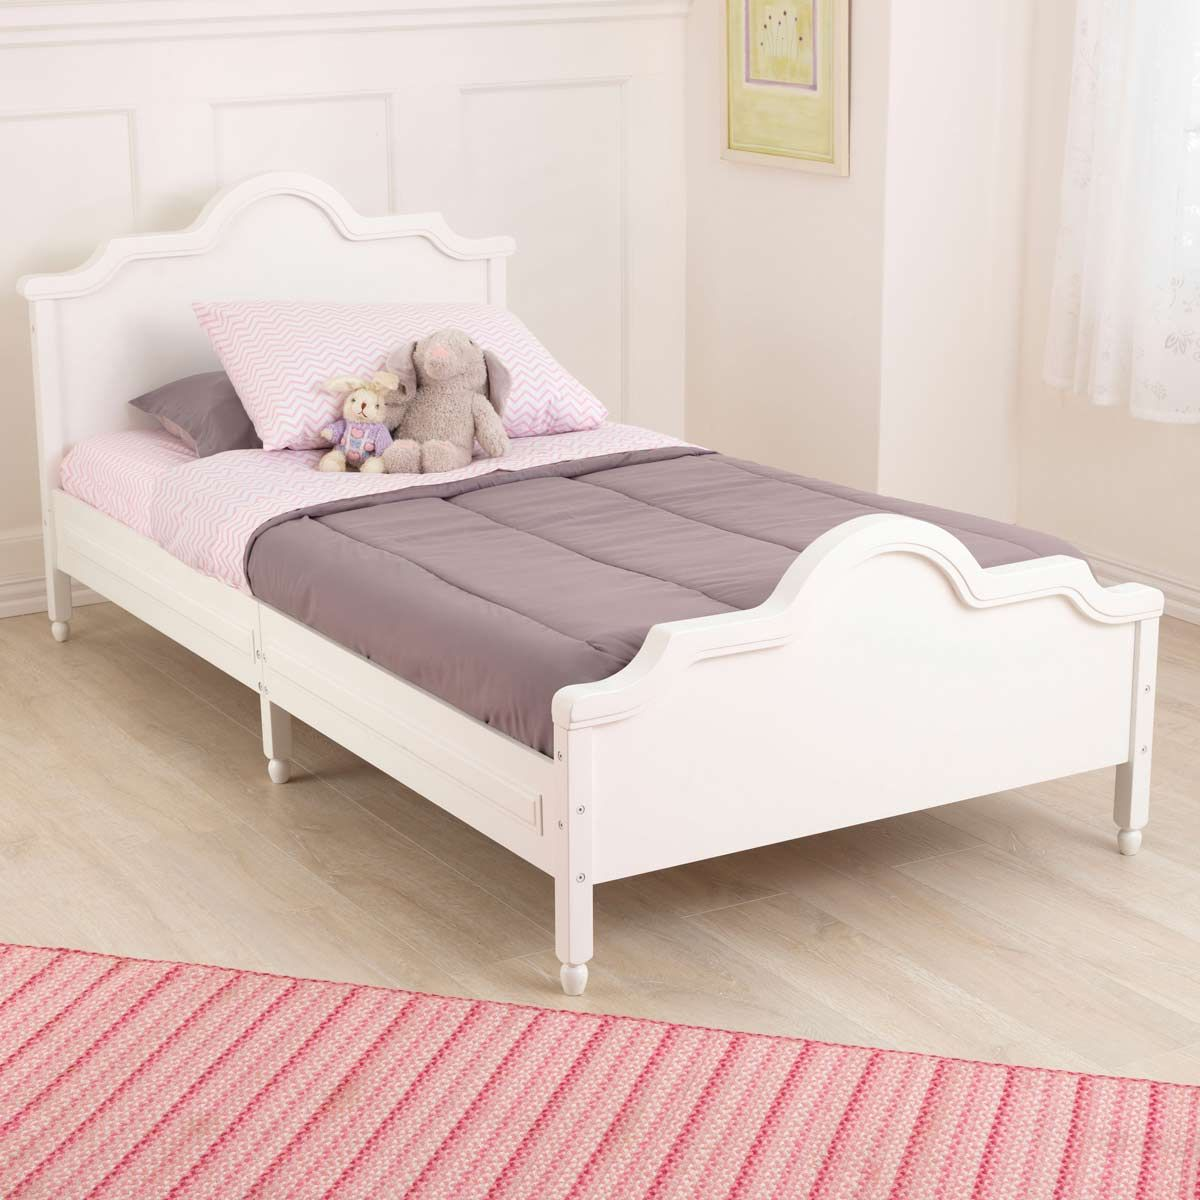 Kidkraft Raleigh Twin Bed in White (With images) | Girls ...